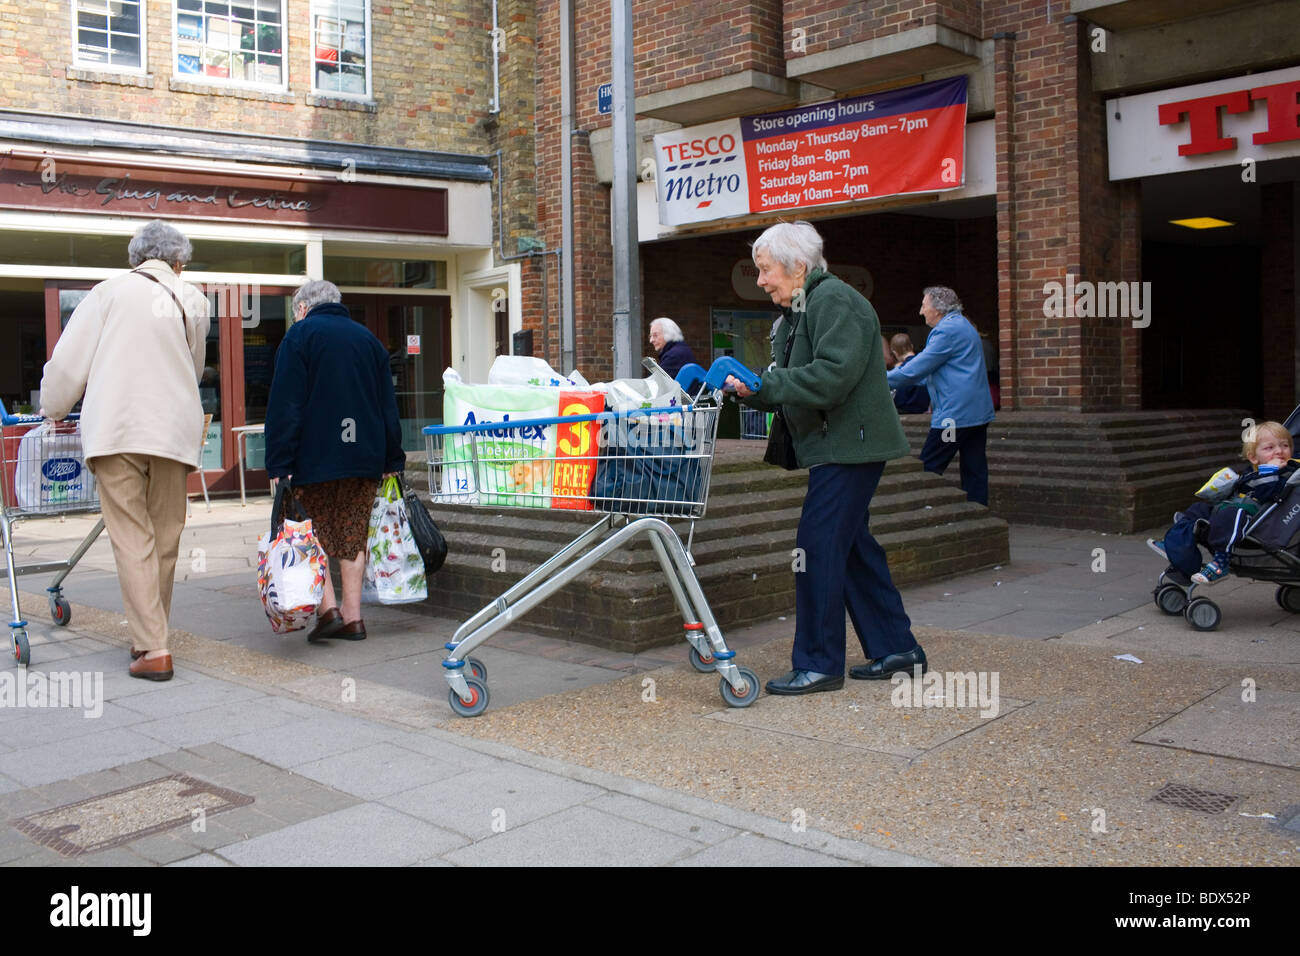 An old woman pushes a trolley full of shopping from Tesco supermarket including a value pack of toilet roll. - Stock Image